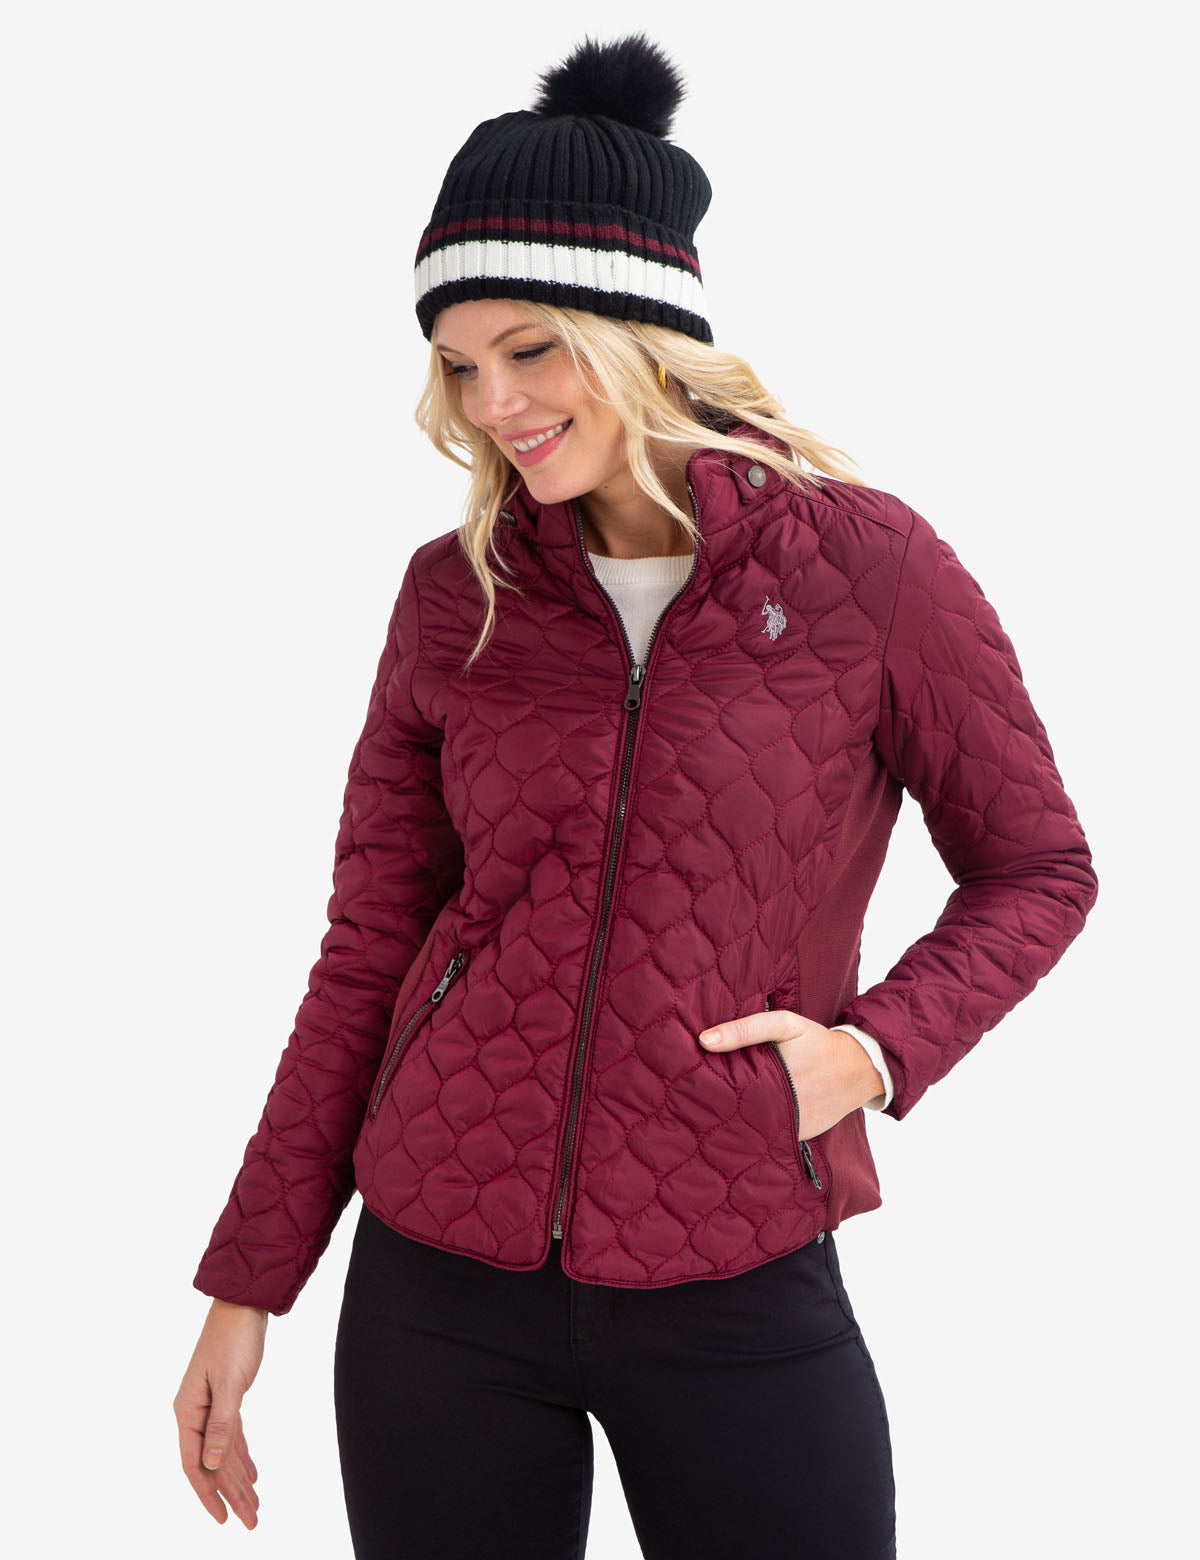 QUILTED SIDE KNIT JACKET - U.S. Polo Assn.